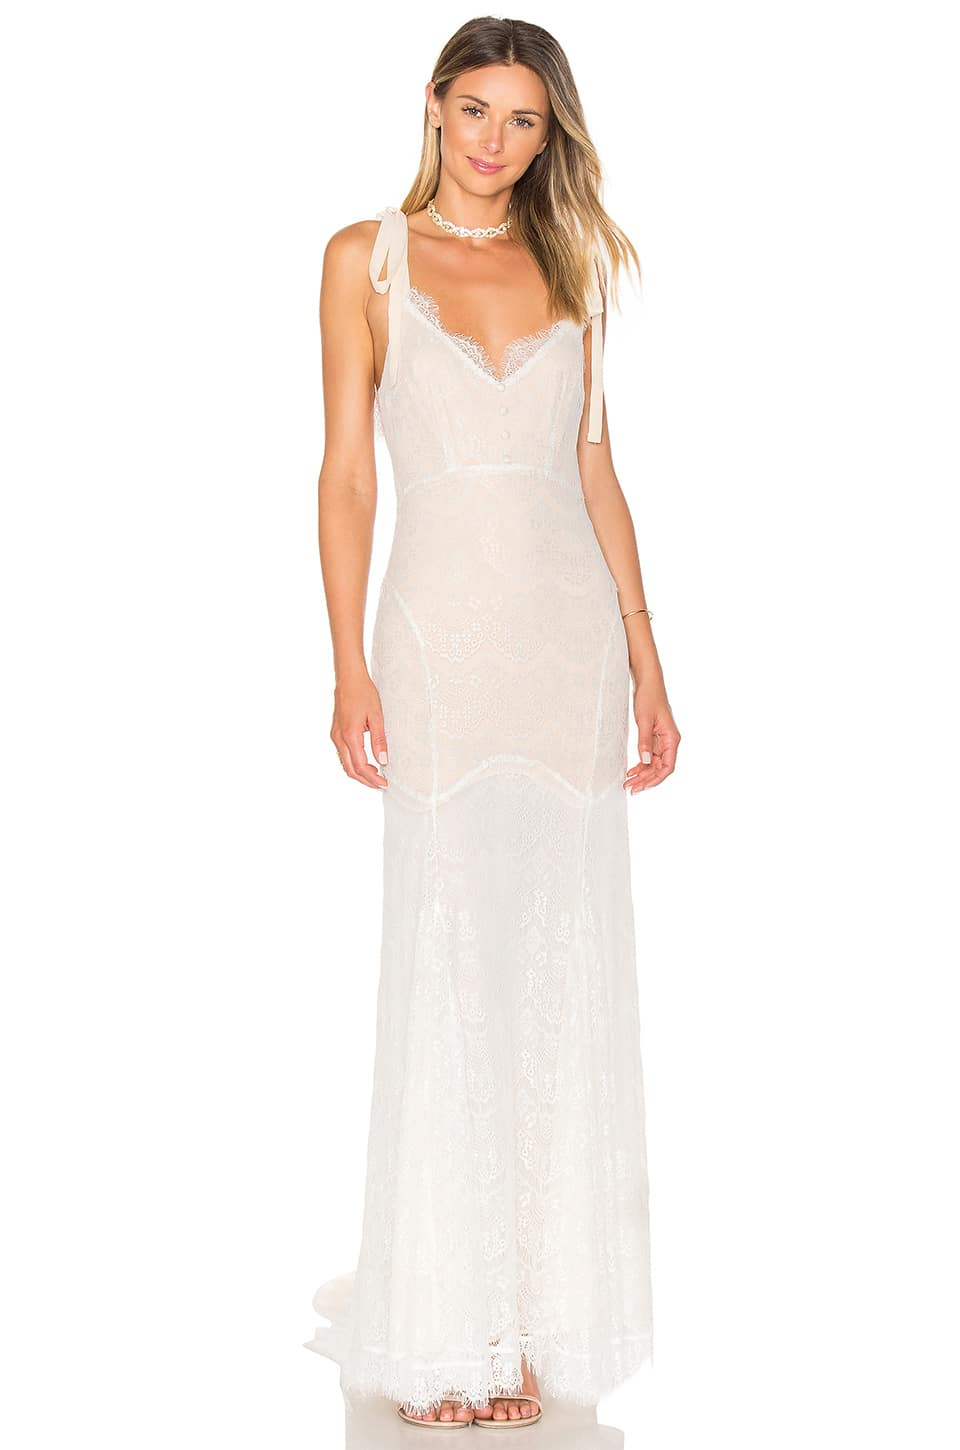 56edebe1a3f DAUGHTERS OF SIMONE X Revolve Olie White Gown - We Select Dresses